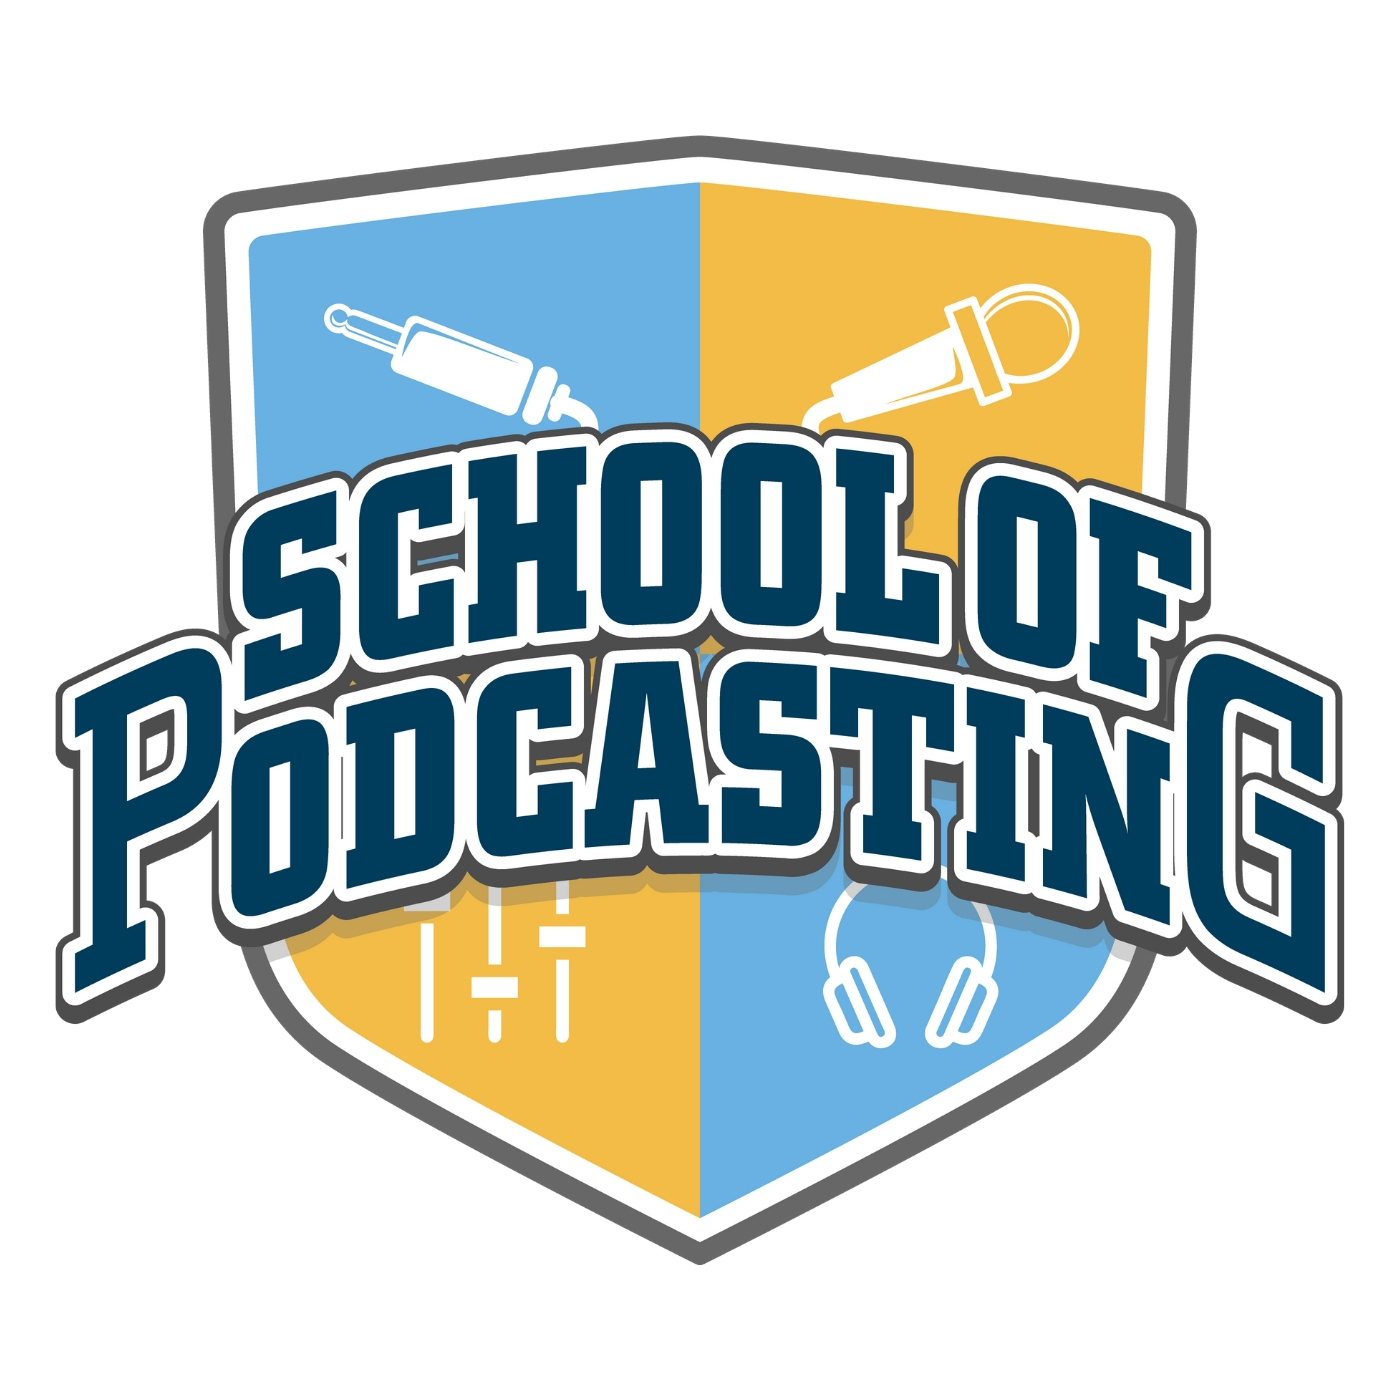 Artwork for What Is Your Absolute Favorite Podcast?